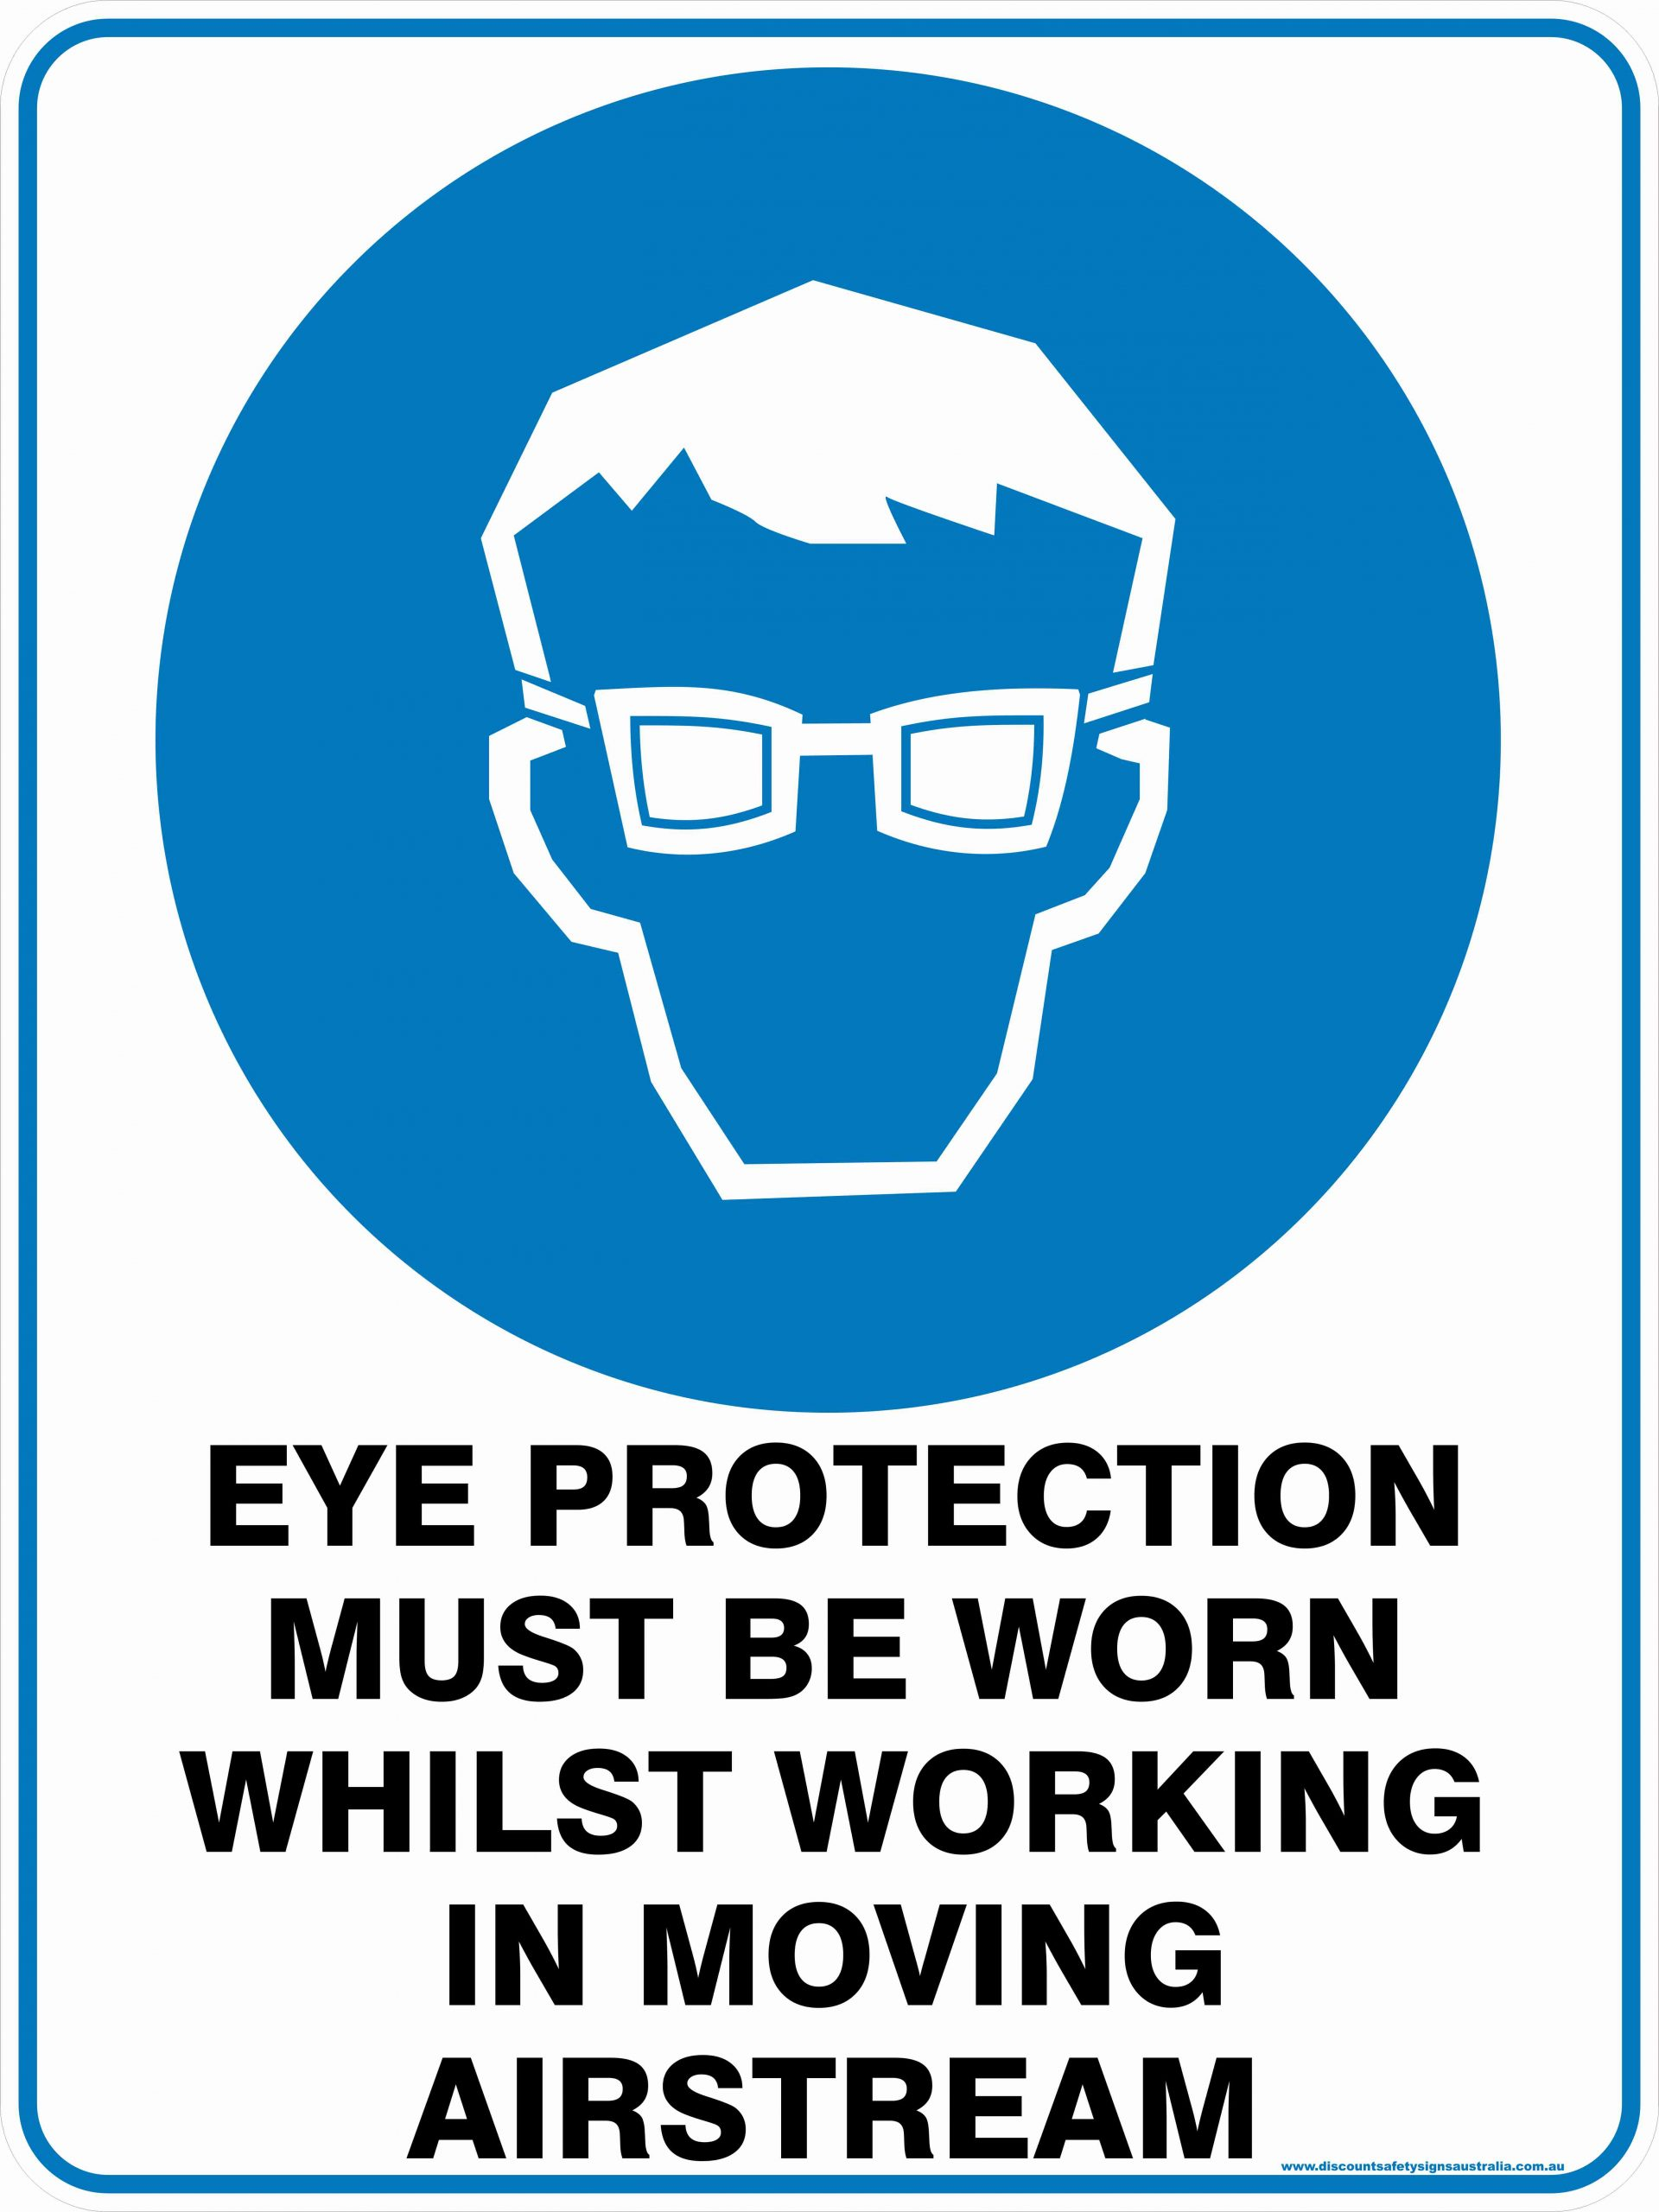 Mandatory Signs EYE PROTECTION MUST BE WORN WHILST WORKING IN MOVING STREAM